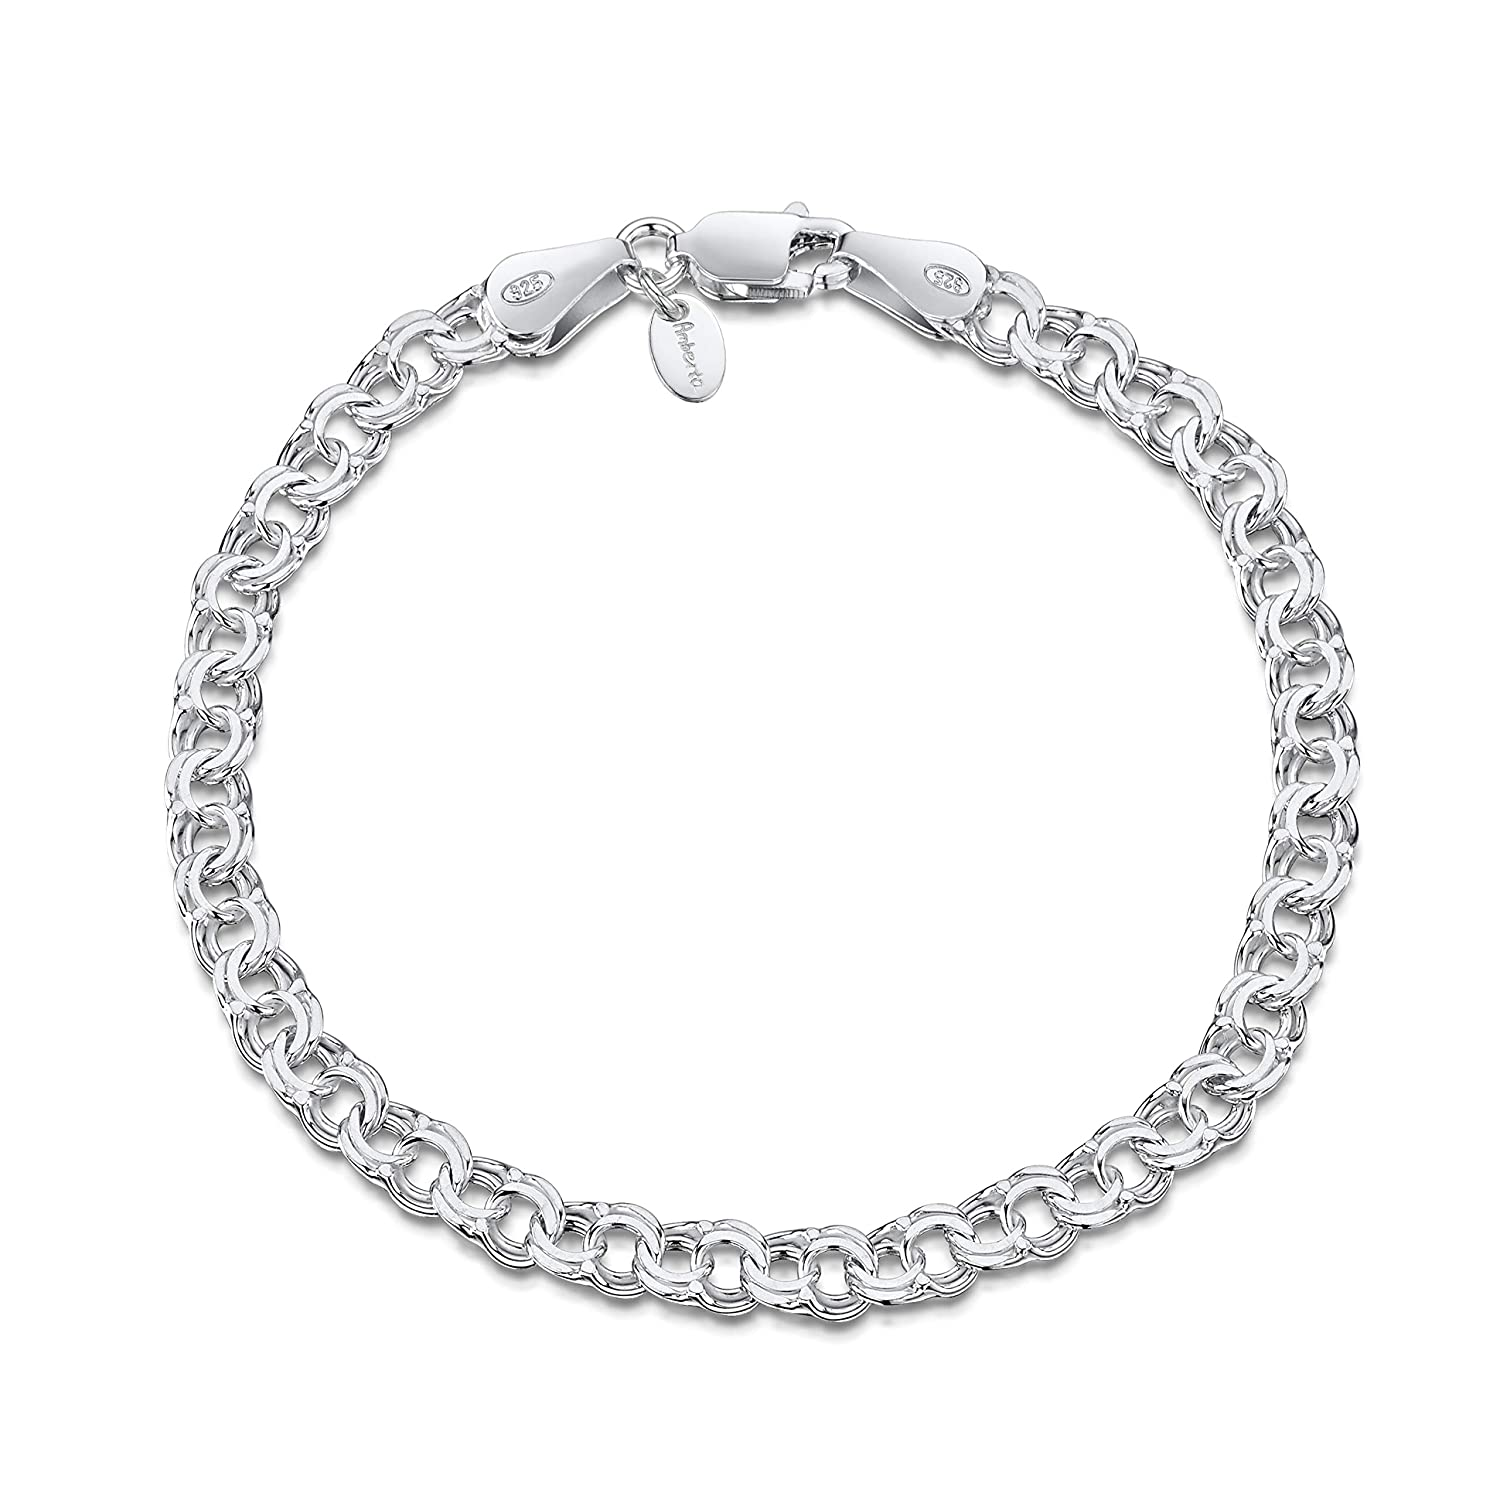 """Authentic .925 Sterling Silver Bracelet 8"""" Latest Fashion Fine Jewelry Jewelry & Watches"""